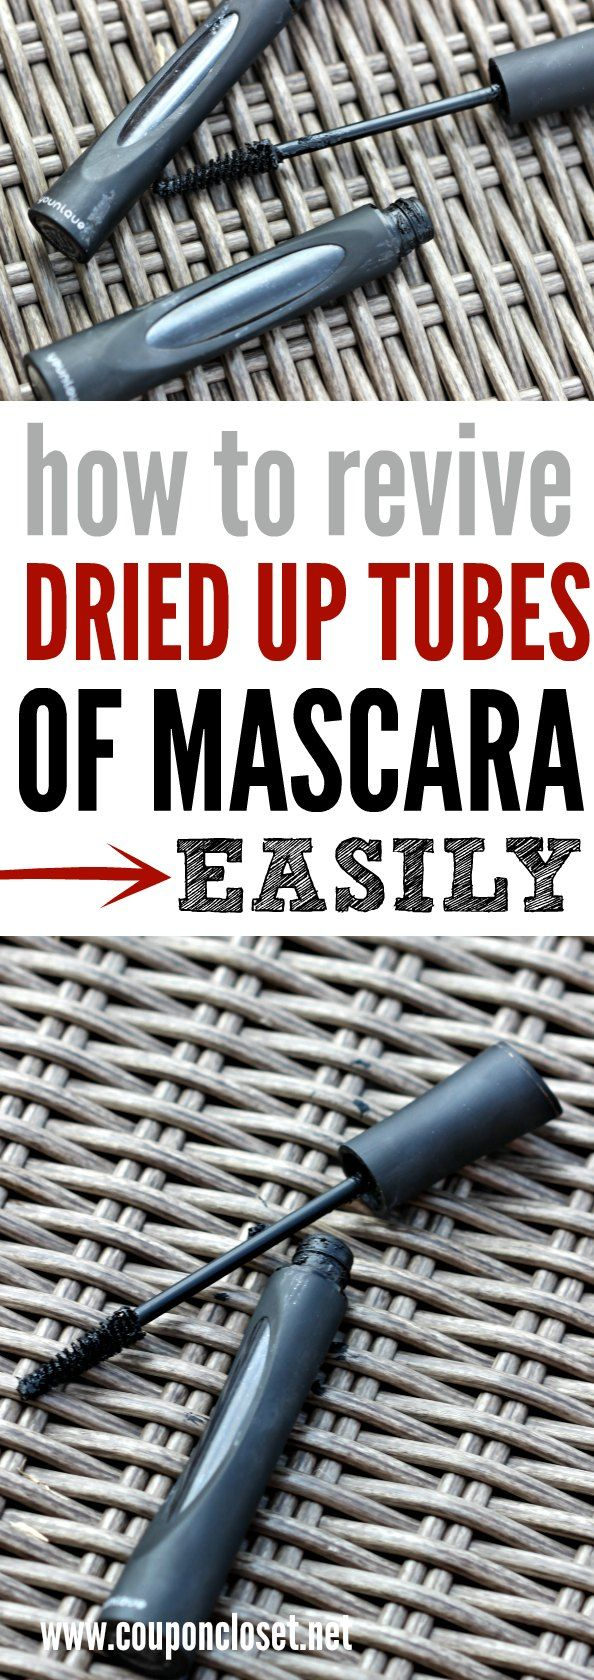 How to fix old and clumpy mascara. revive Mascara - even dry mascara. Thin out…